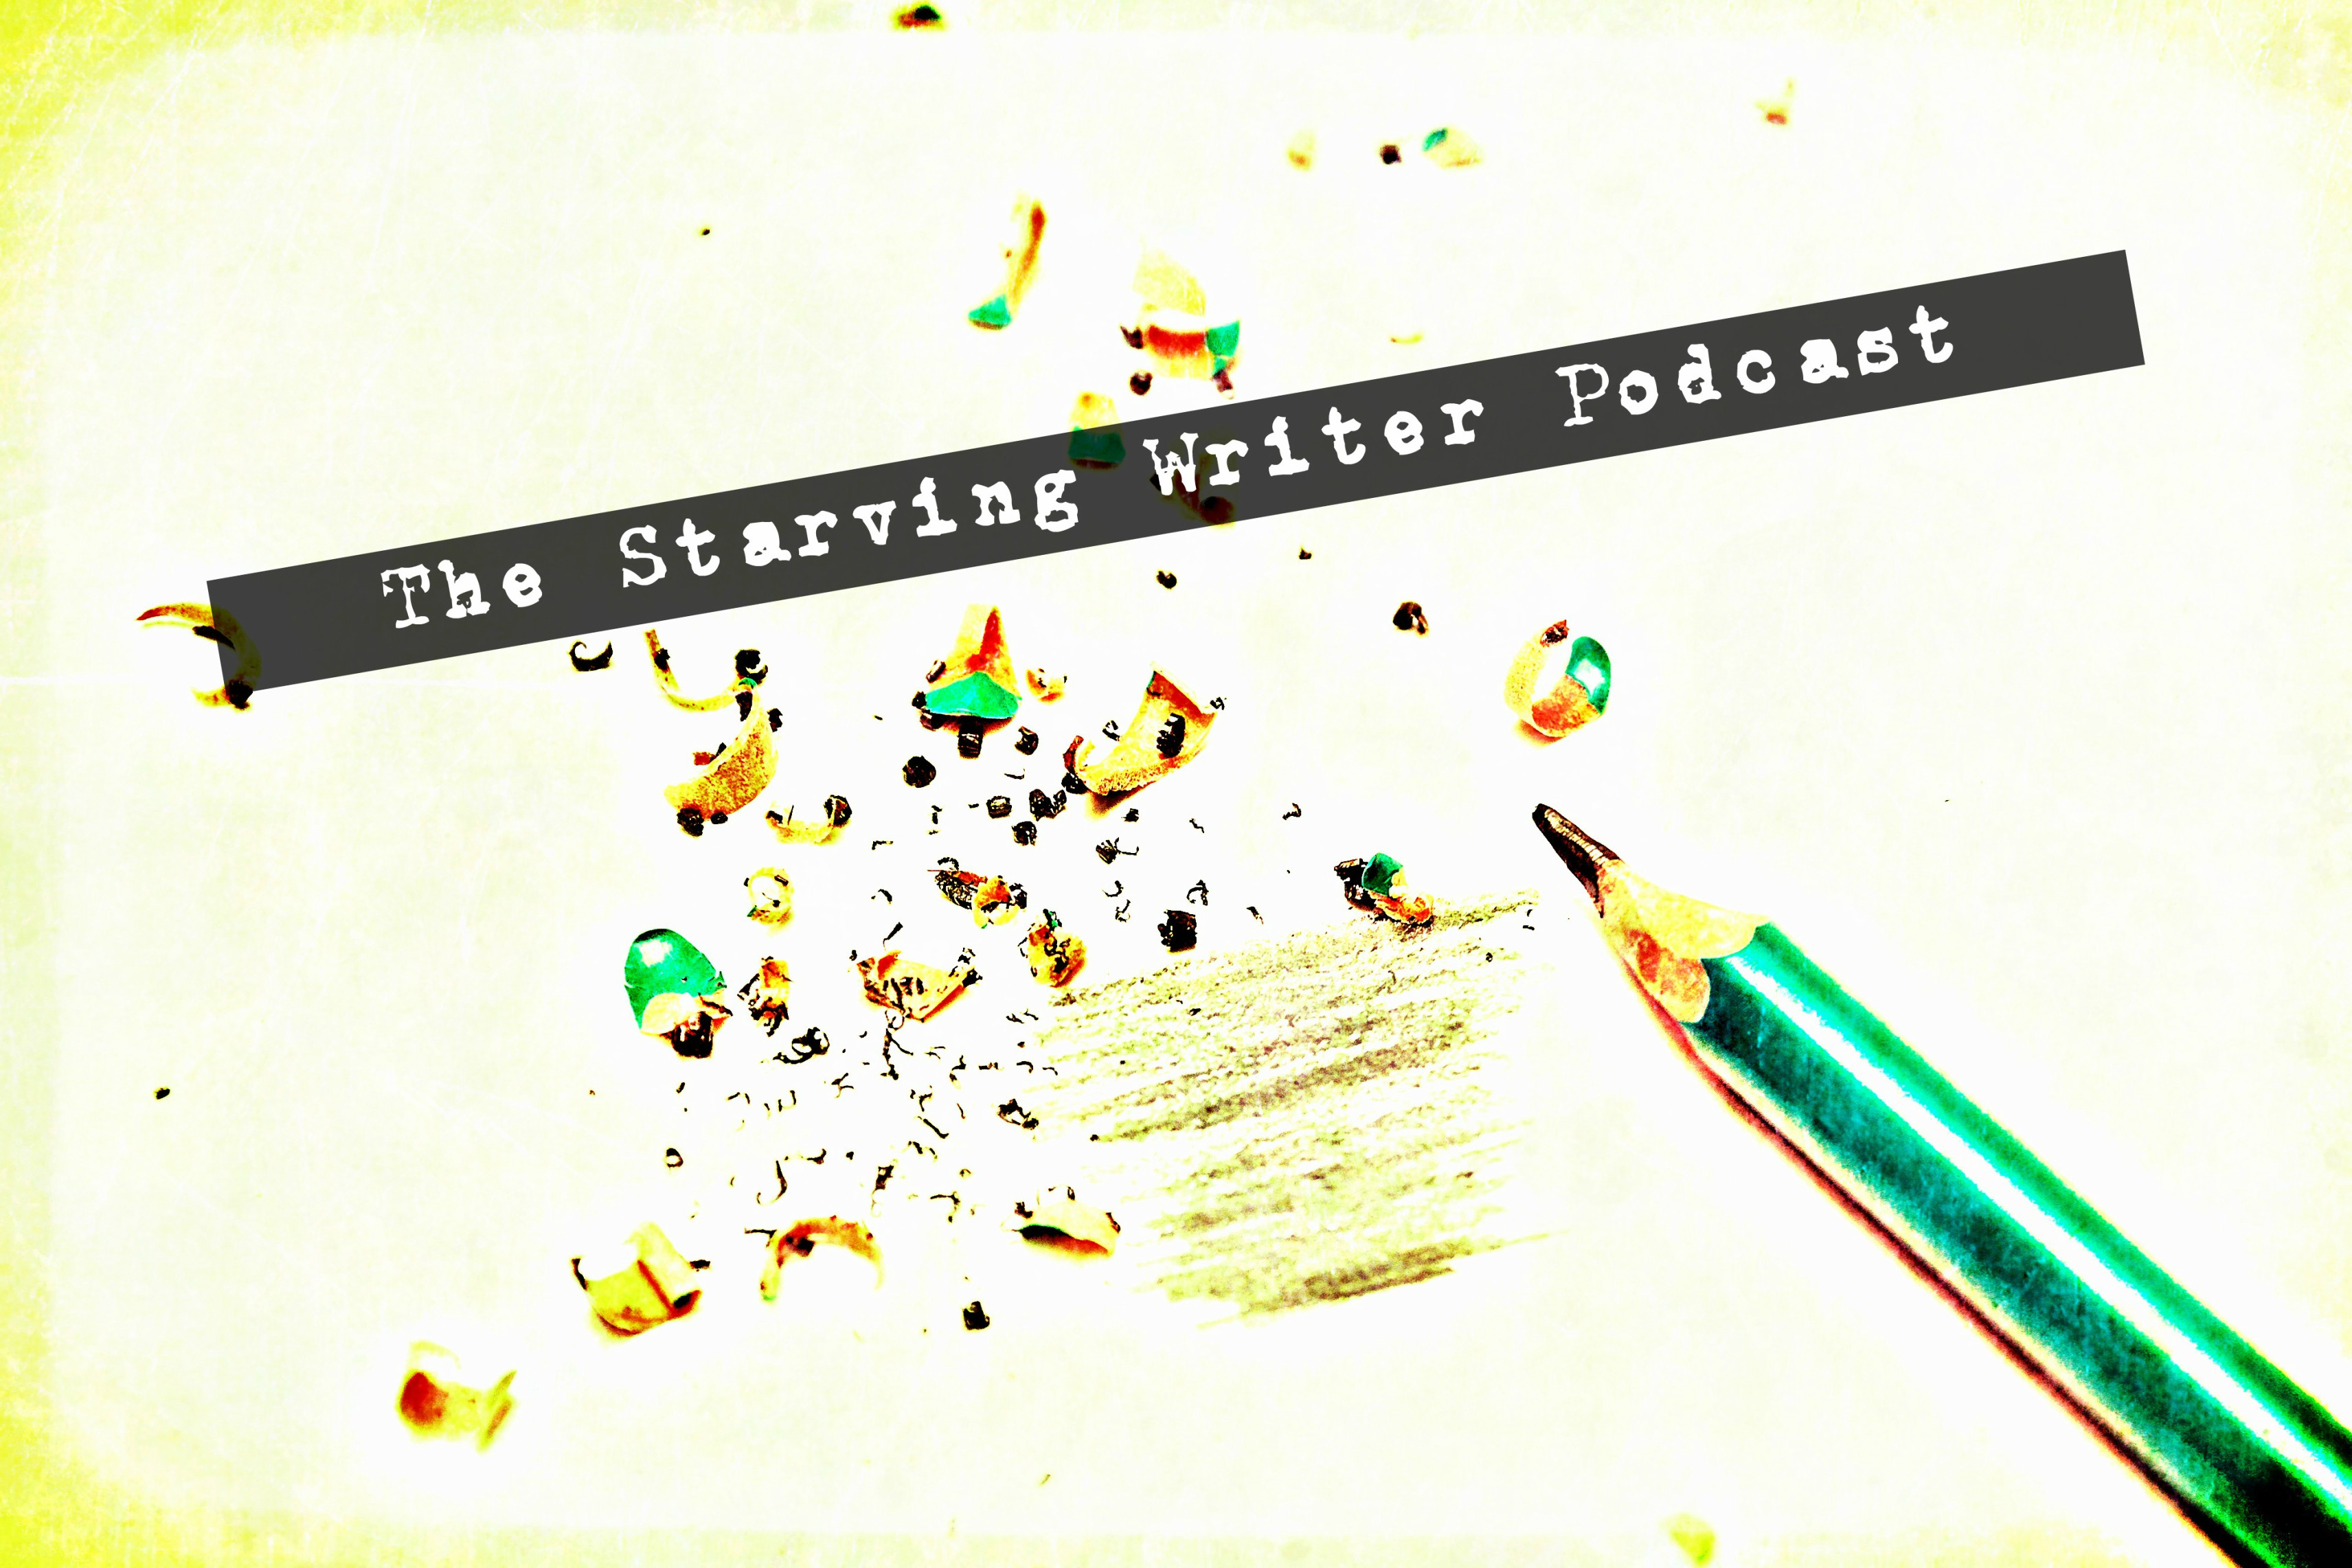 The Starving Writer Podcast